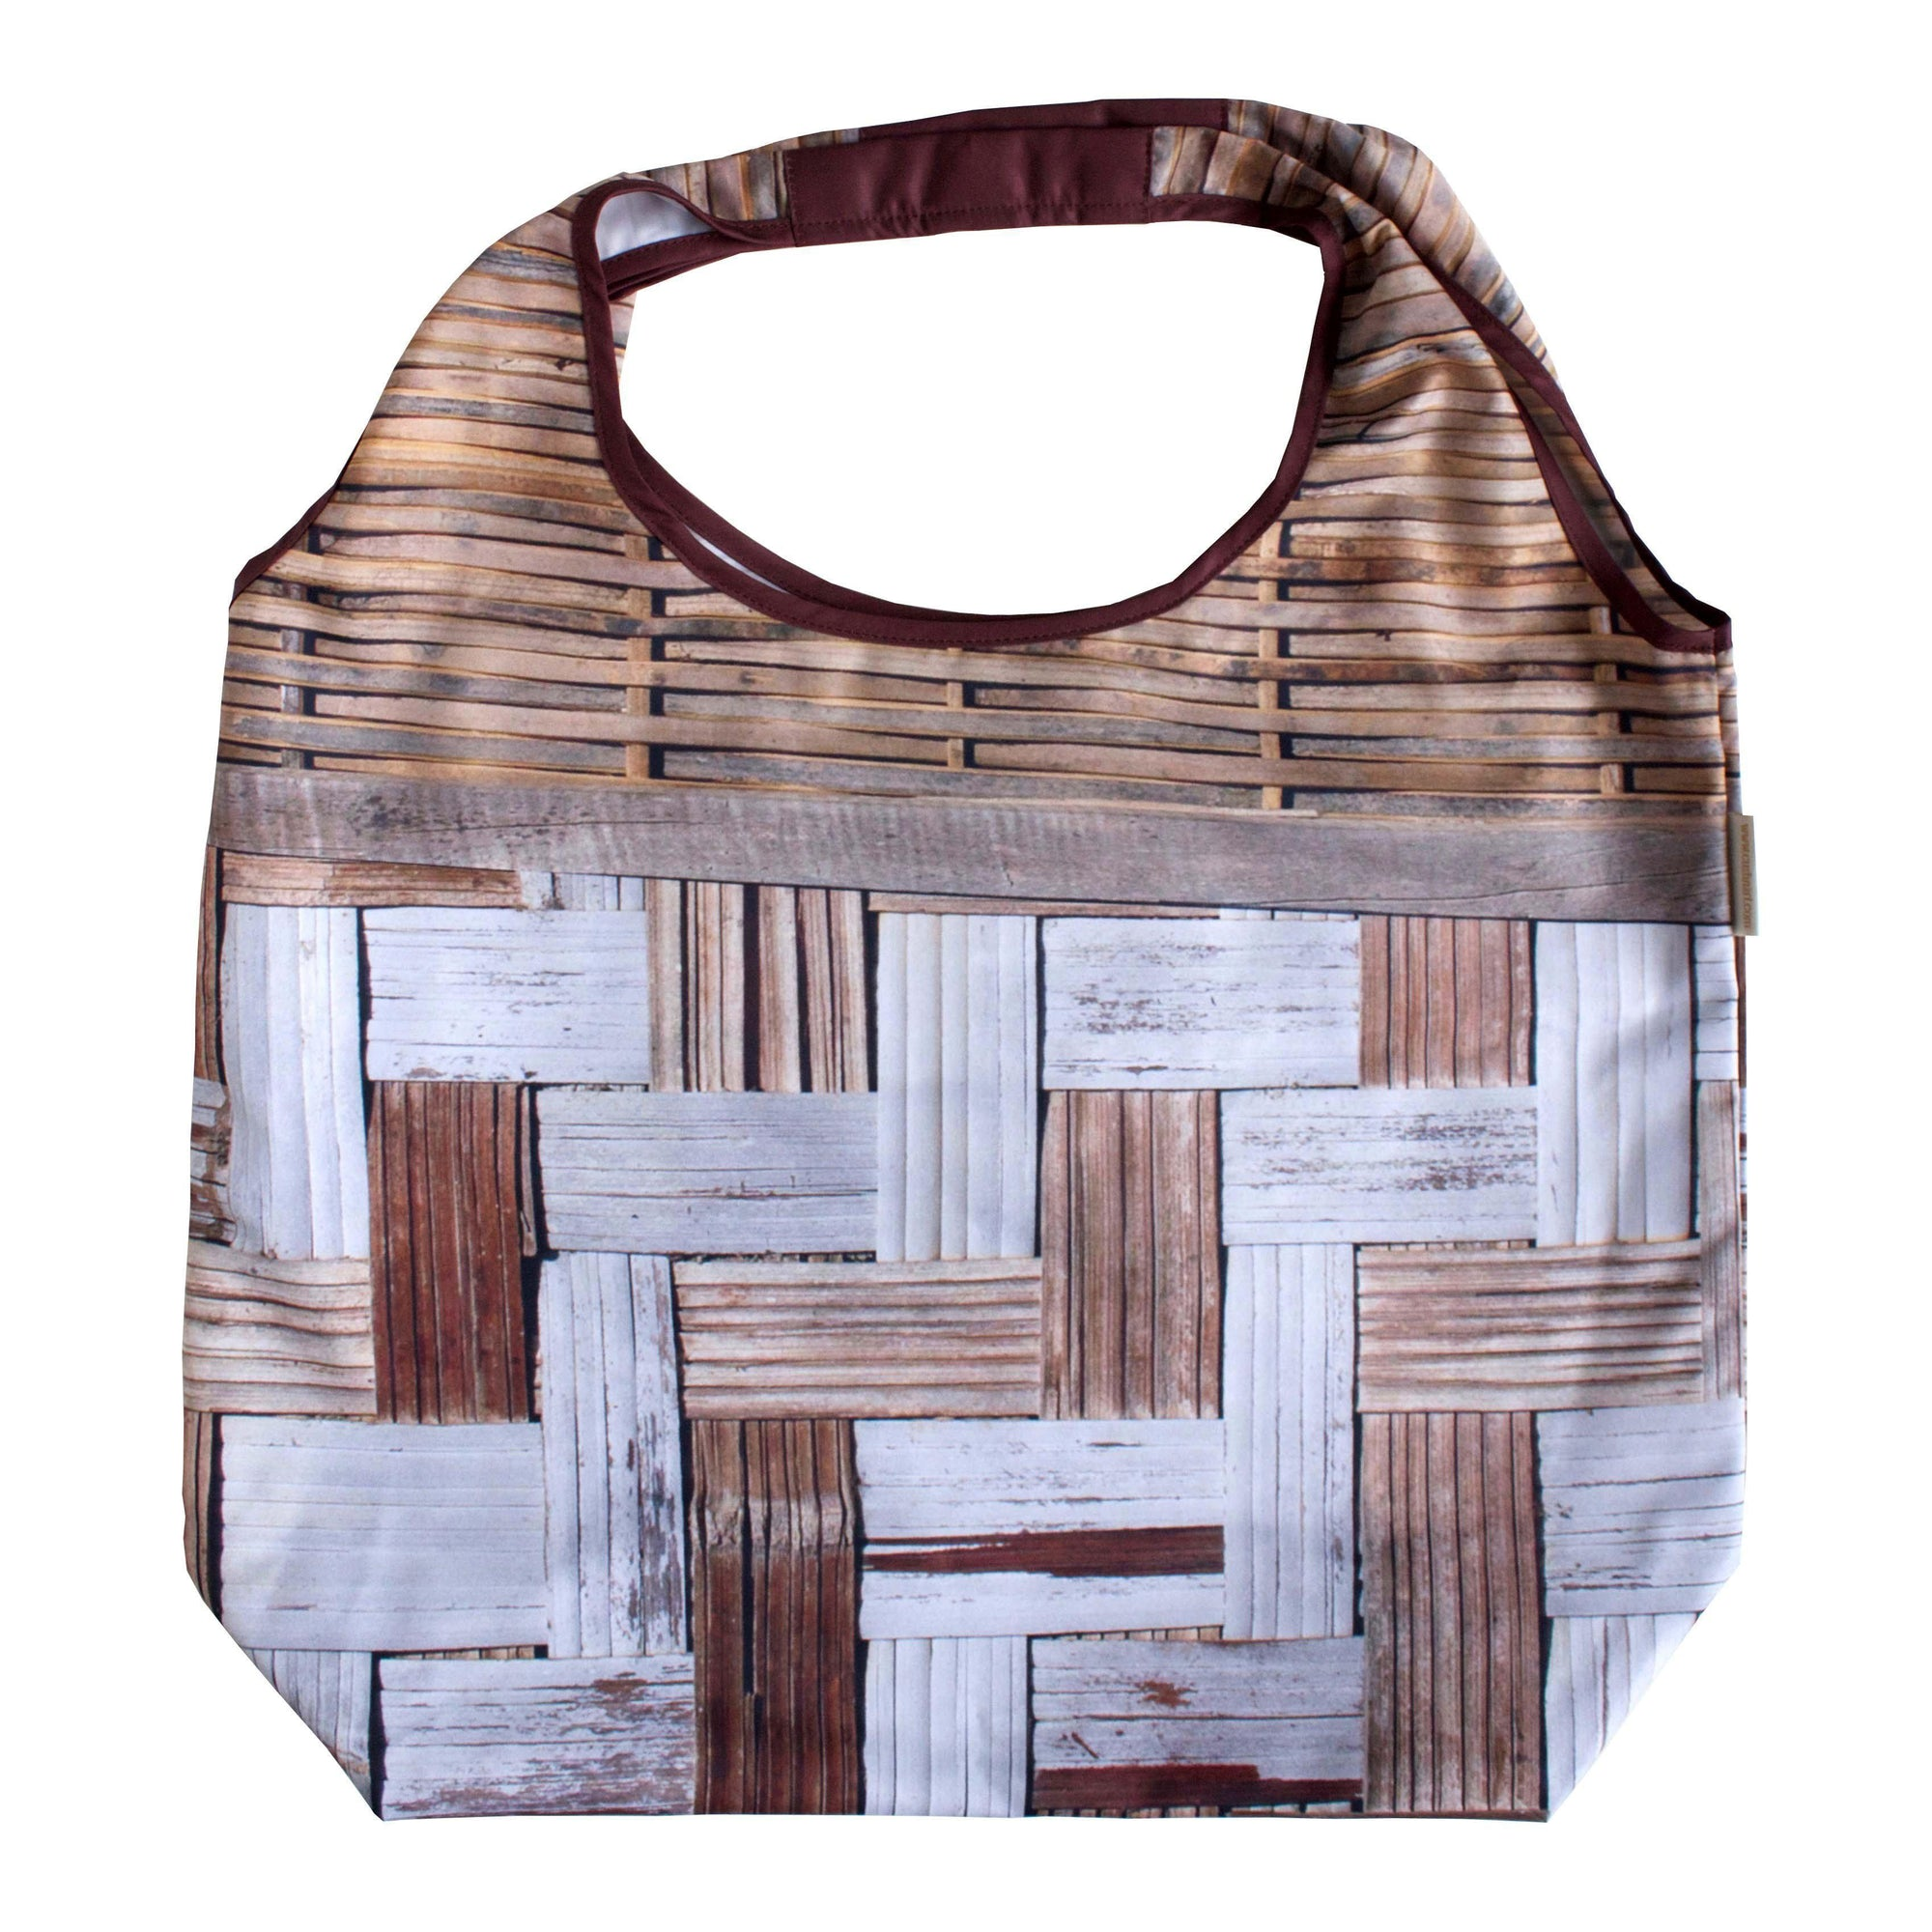 Bamboo Wall Foldable Tote Bag